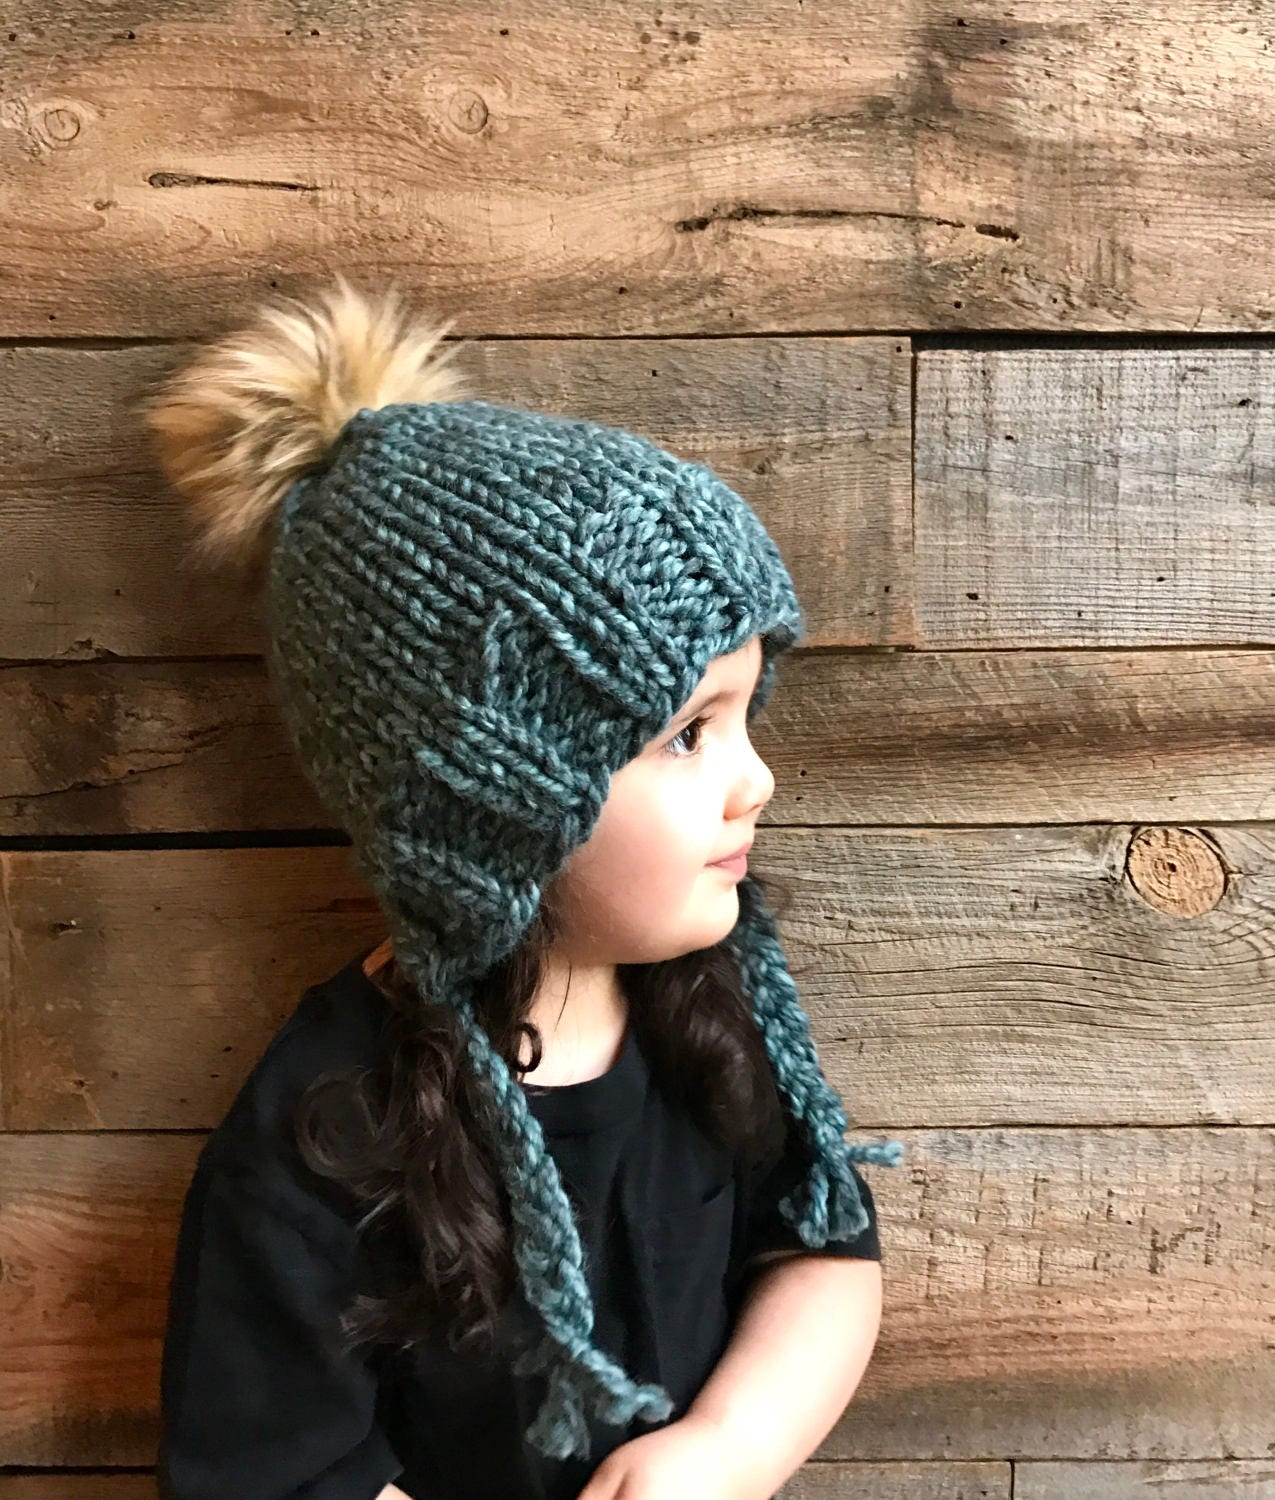 Hermosa Beanie Hat Knitting Pattern For Kids Molde - Manta de Tejer ...